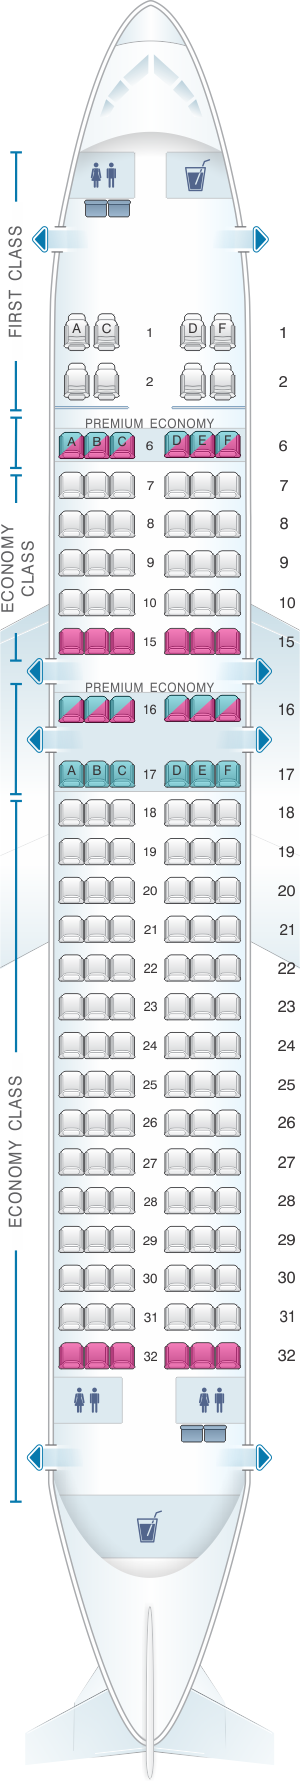 Seat map for Alaska Airlines - Horizon Air Airbus A320 214